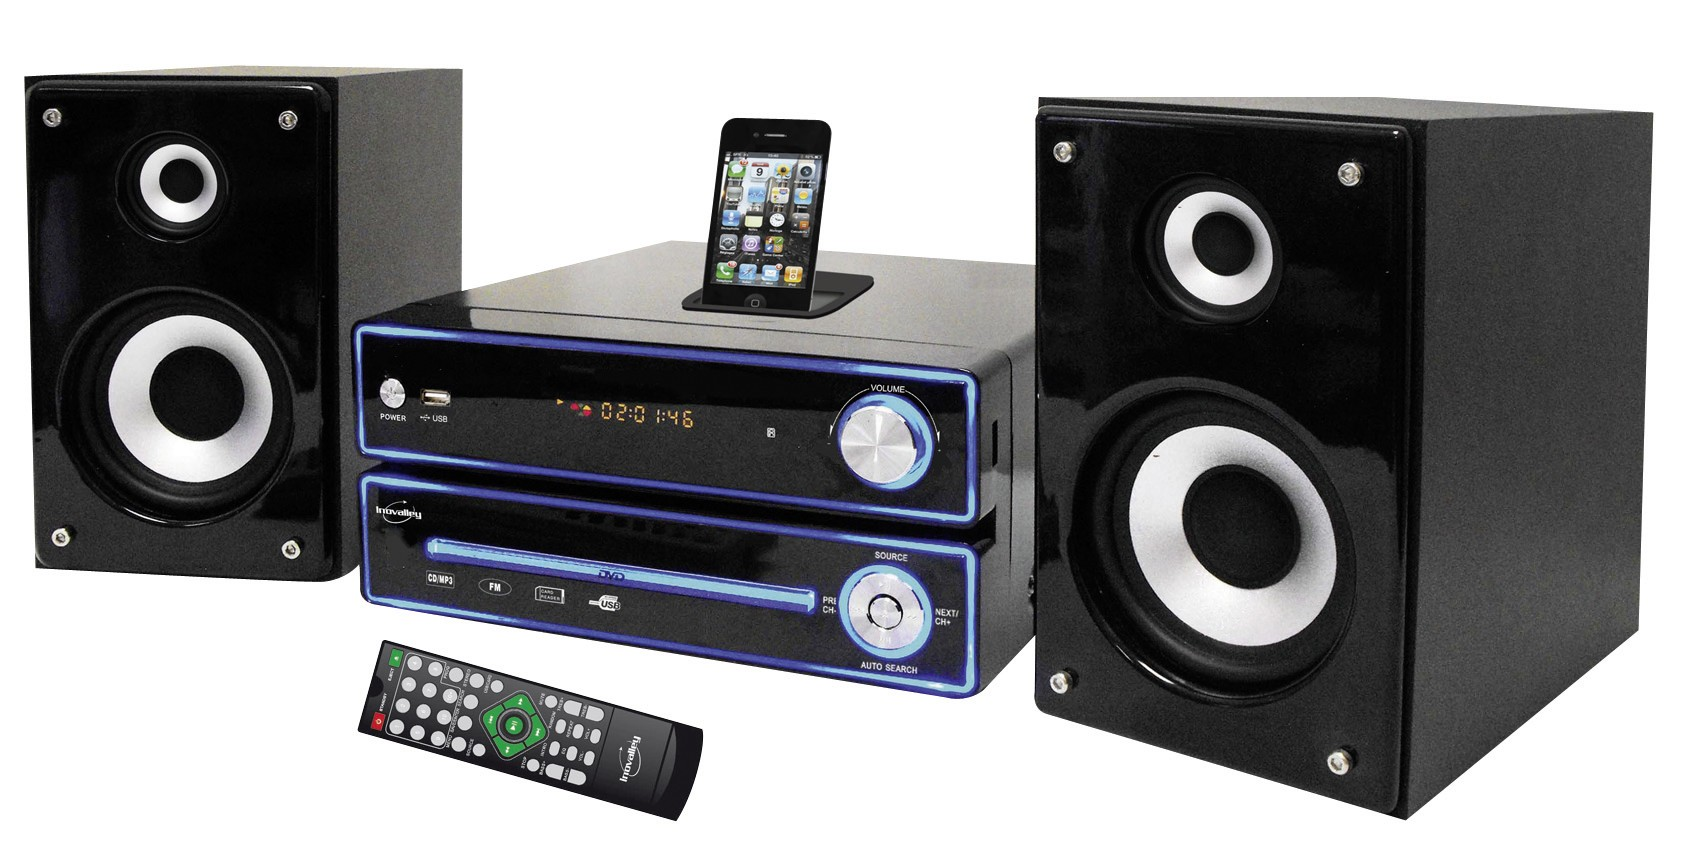 chaine hifi docking station est vendu pour 93 56. Black Bedroom Furniture Sets. Home Design Ideas